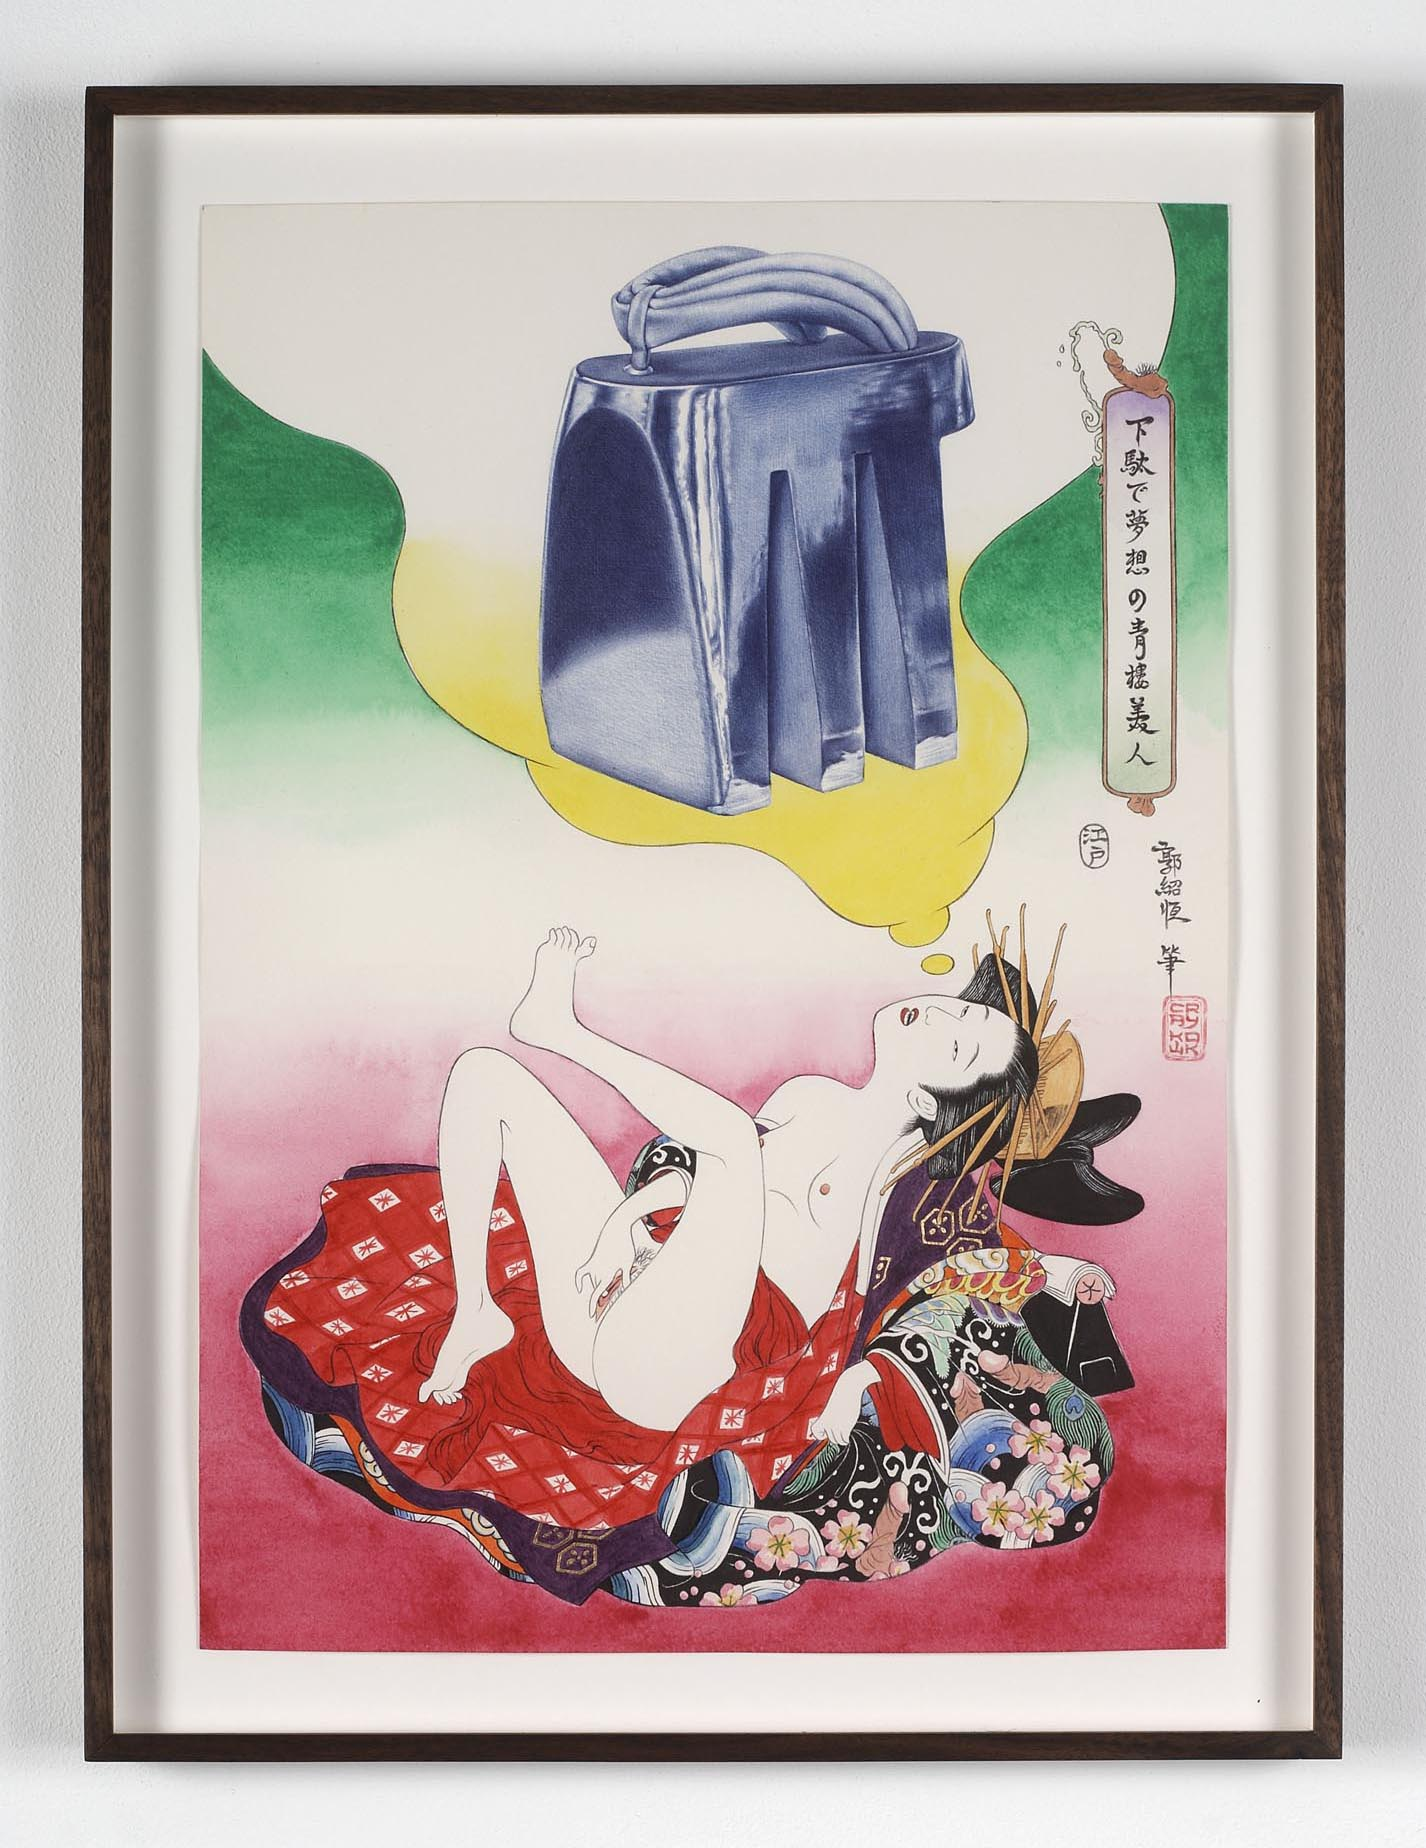 Desire - Japanese (Edo Period) 2009 acrylic, ink, permanent marker and 23 3/4 Carat Gold leaf on paper 42 x 29.7 cm